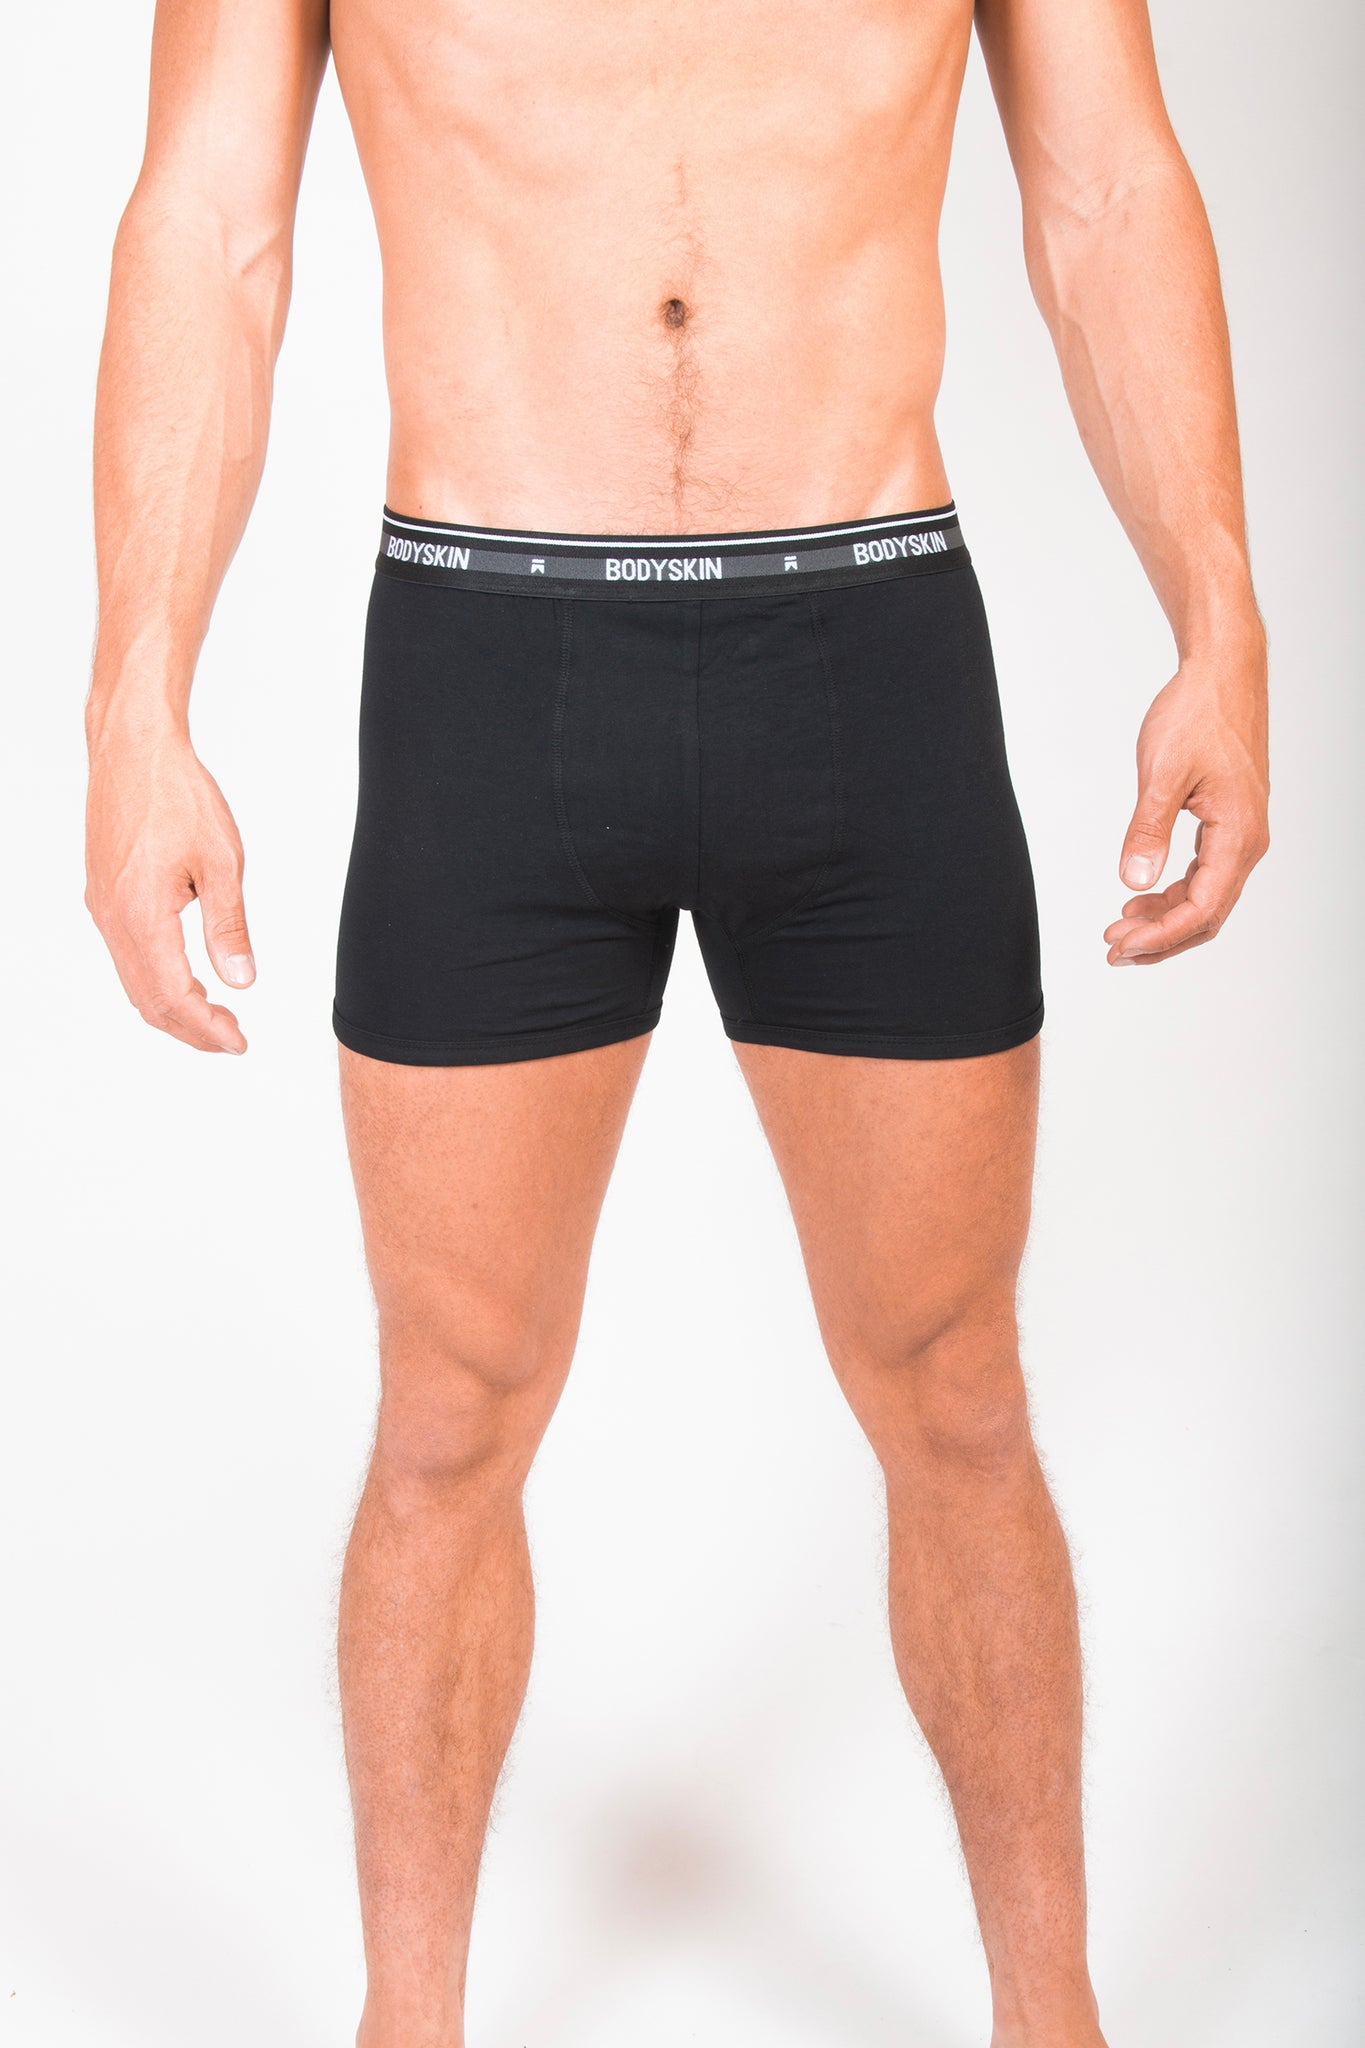 Pack Bodyskin Basic - 2 boxers noirs